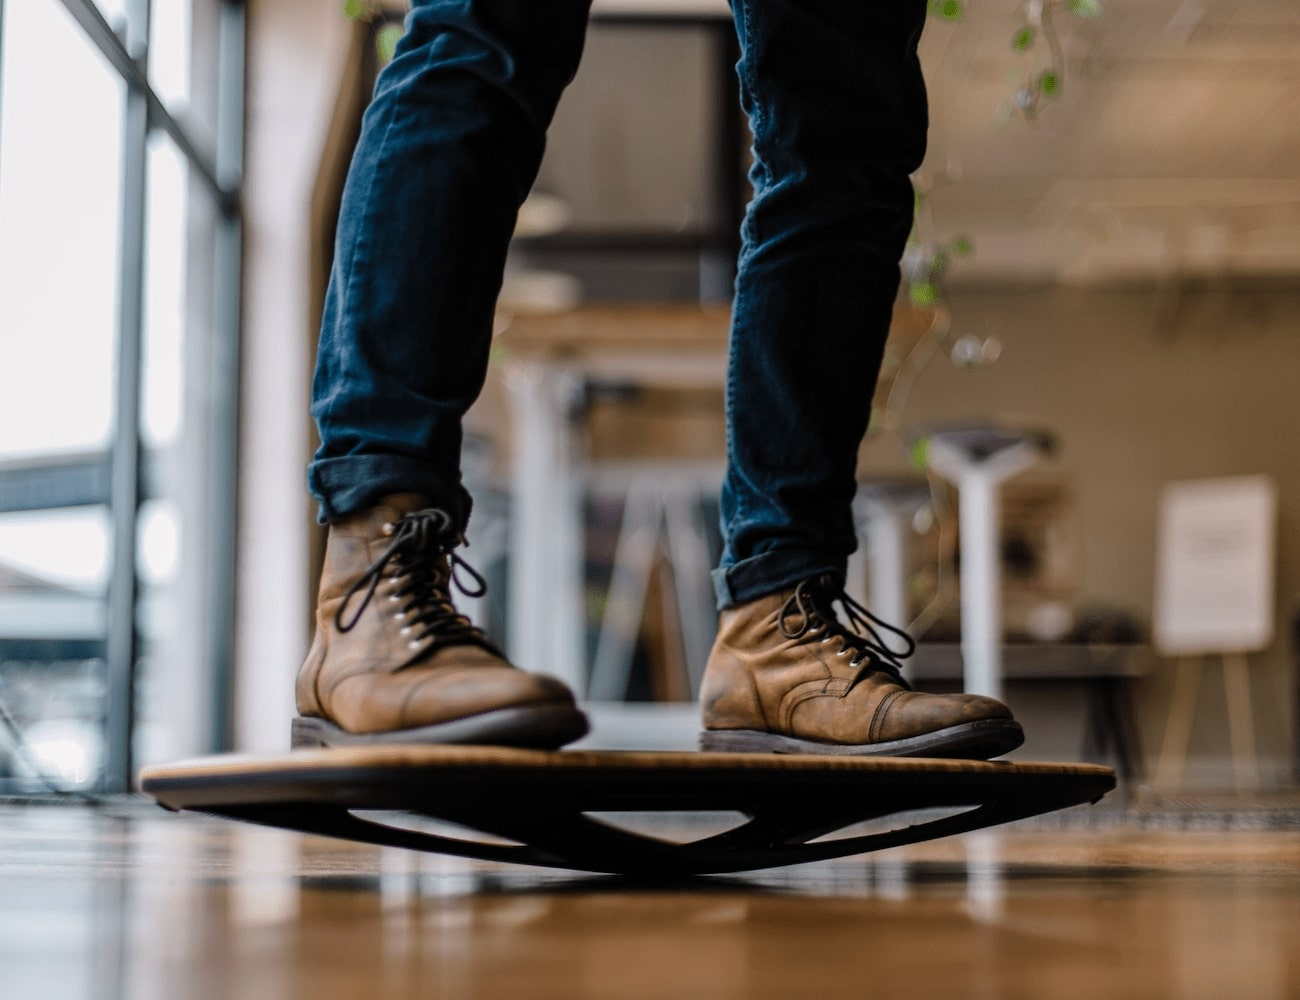 Floatdeck Standing Desk Balance Board activates your entire body